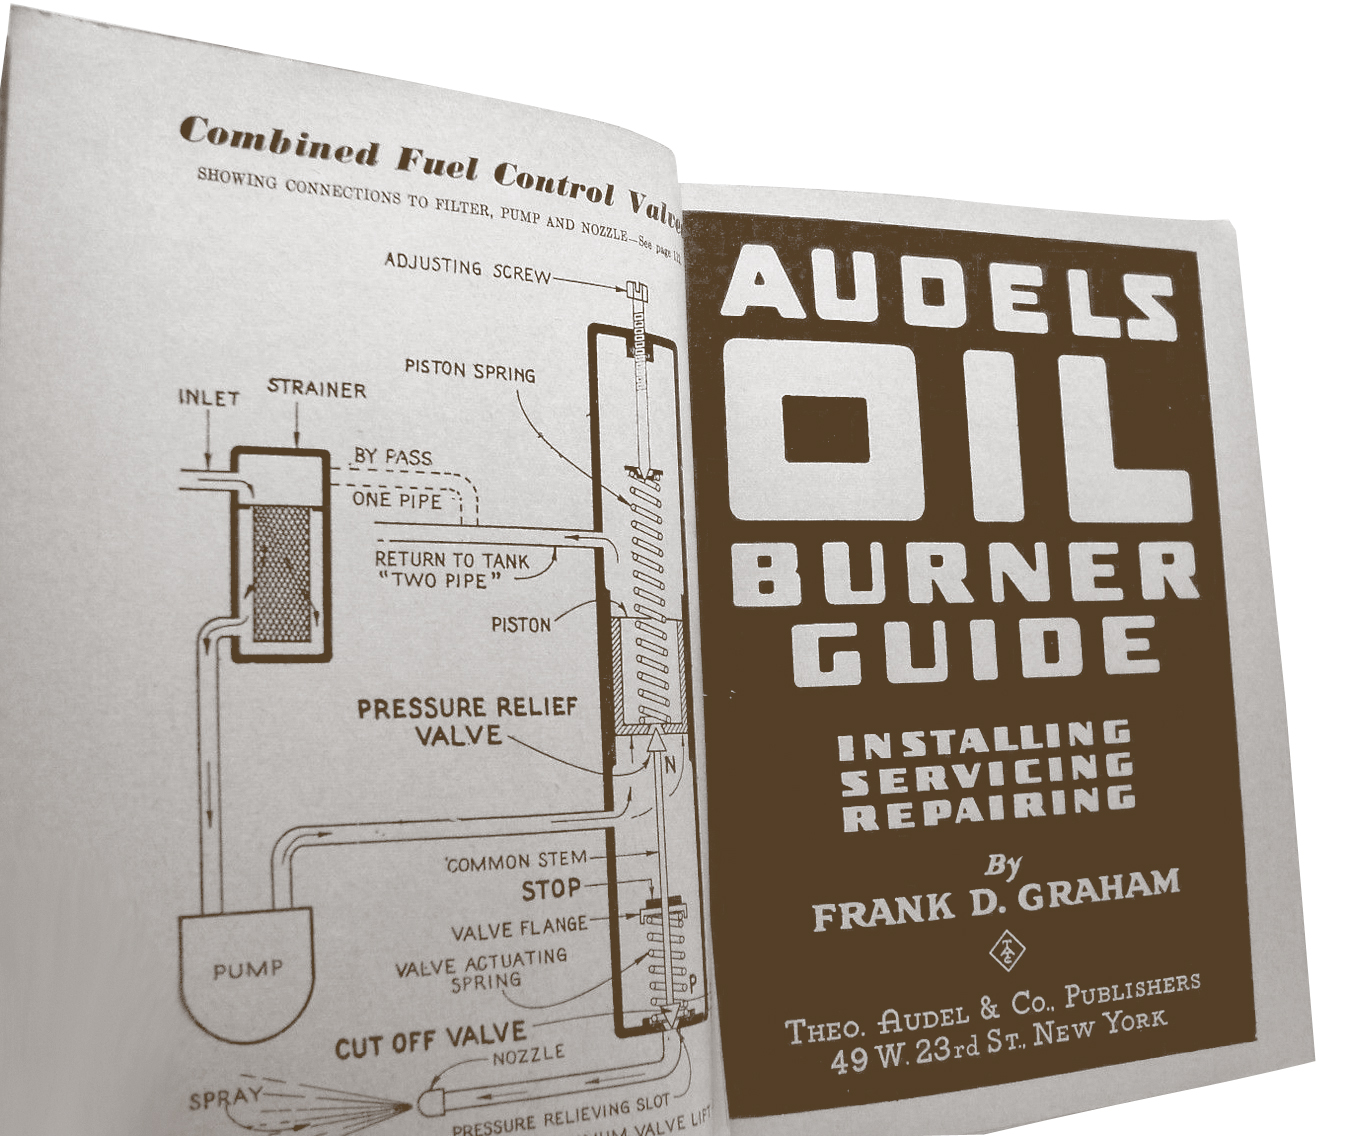 Audels Oil Burner Guidex